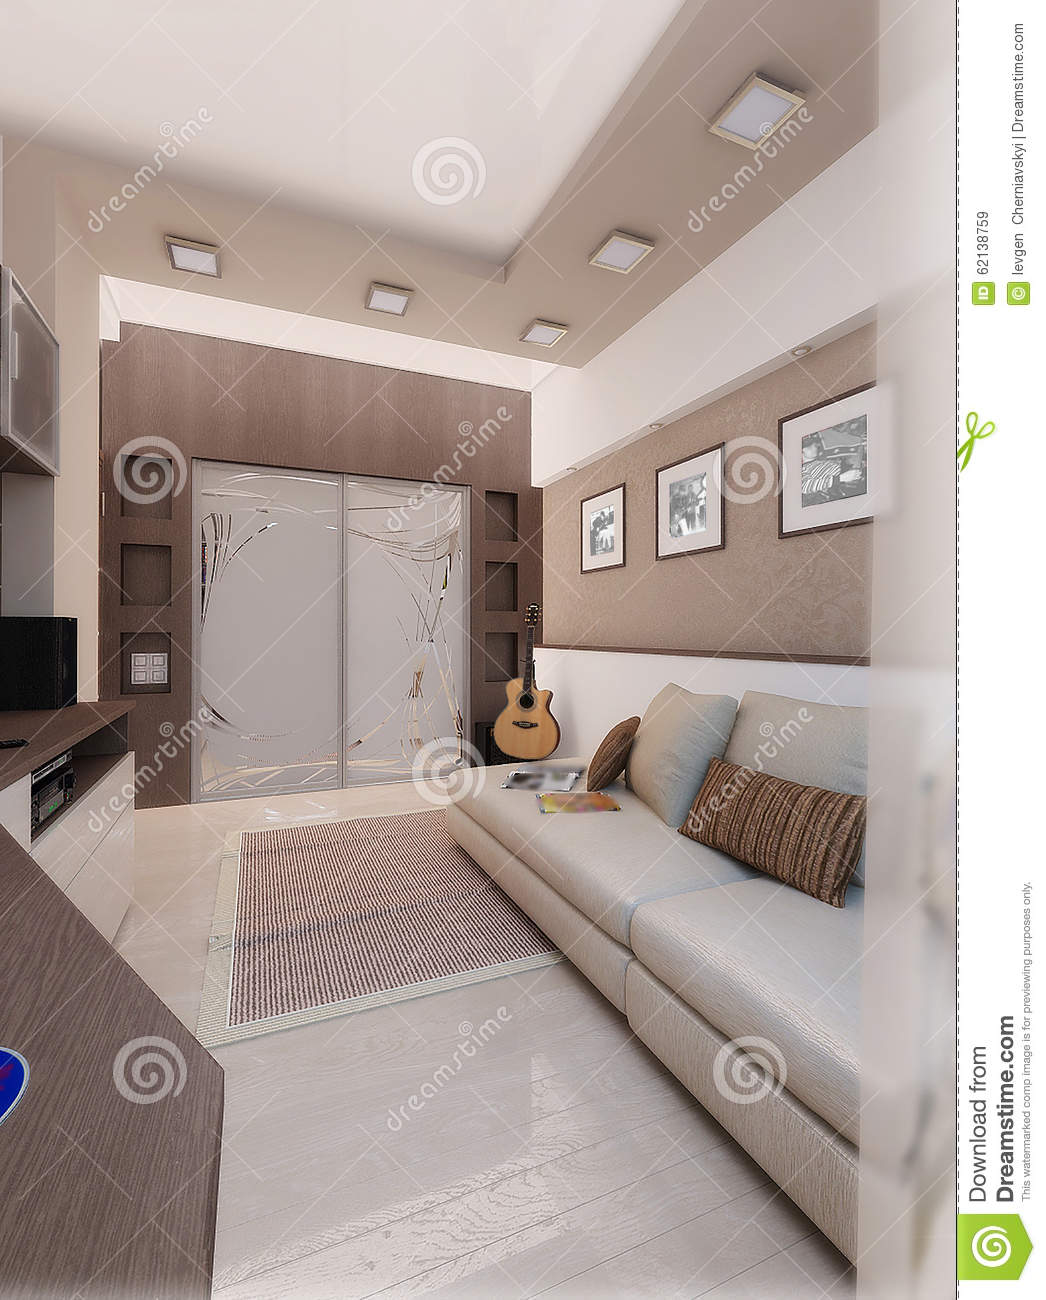 Young man bedroom interior design render 3d stock for Bedroom ideas young man